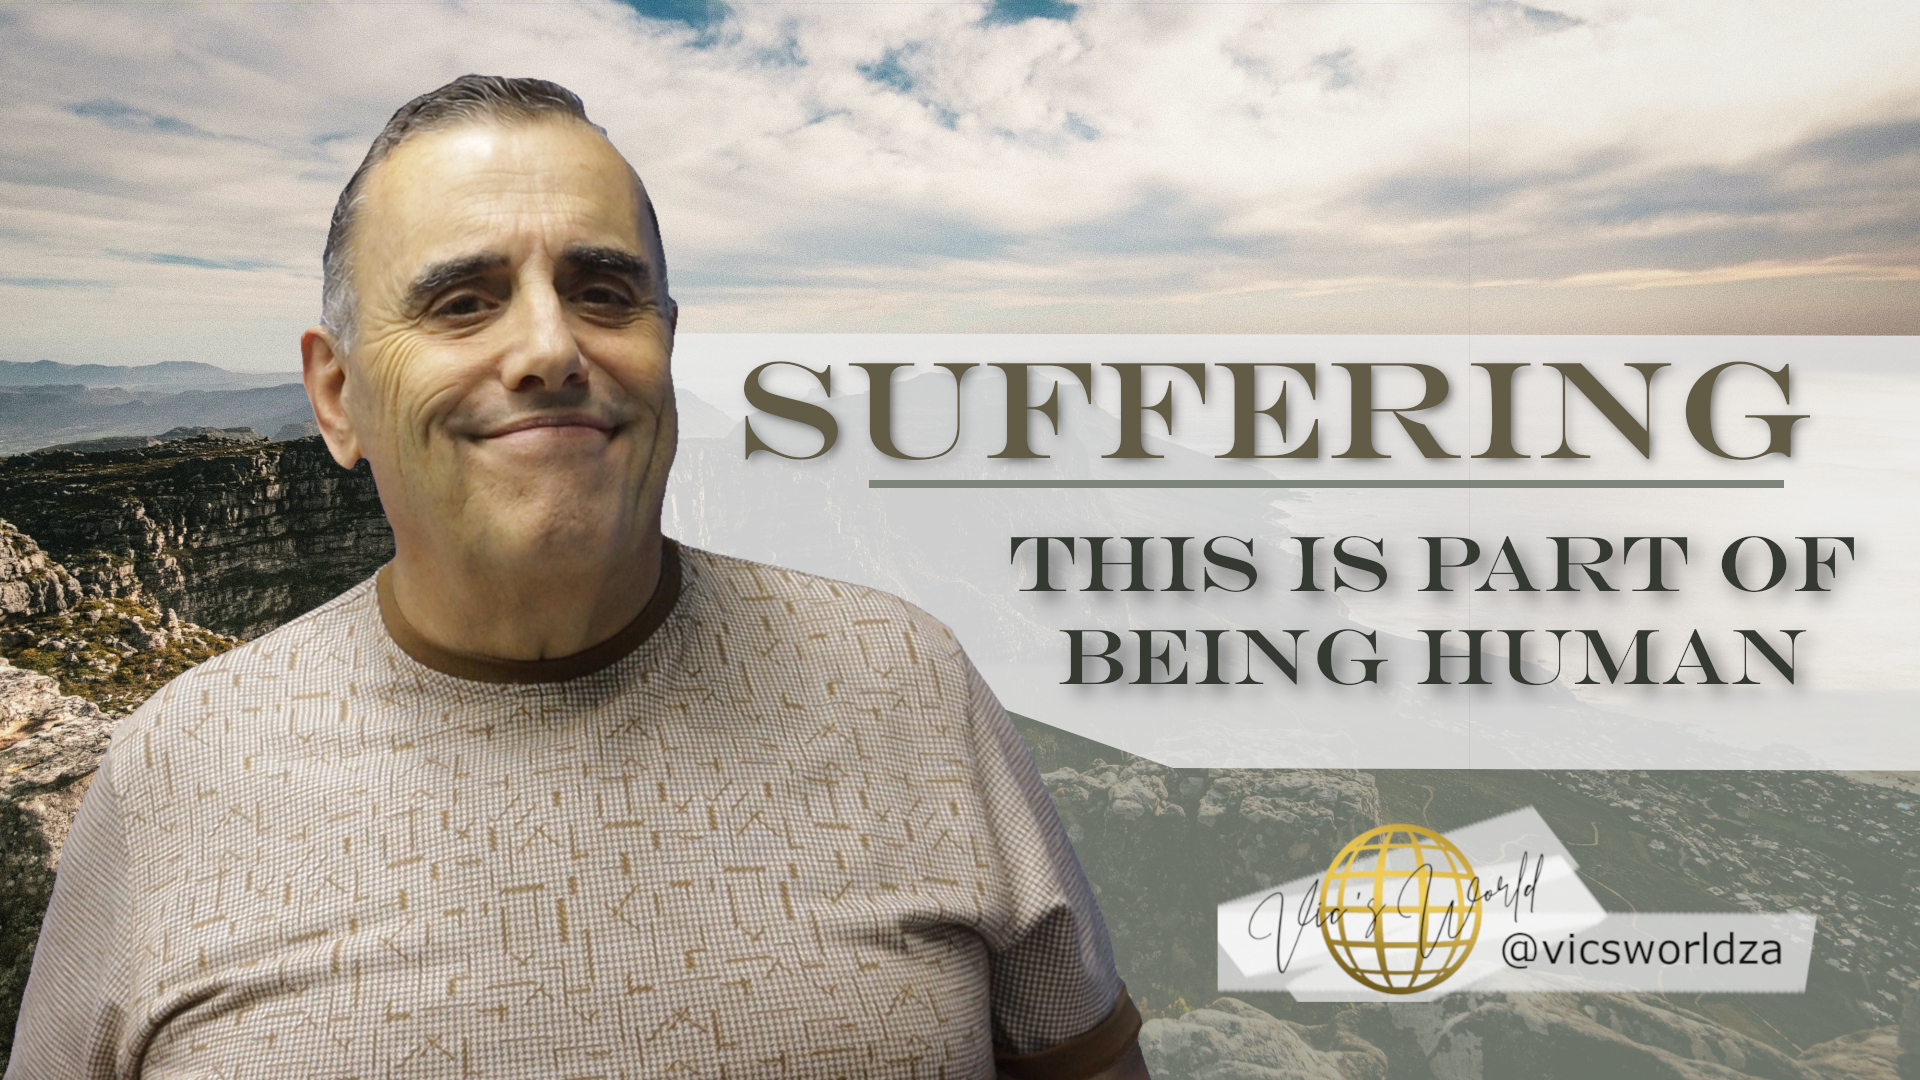 Suffering! This is part of being human!